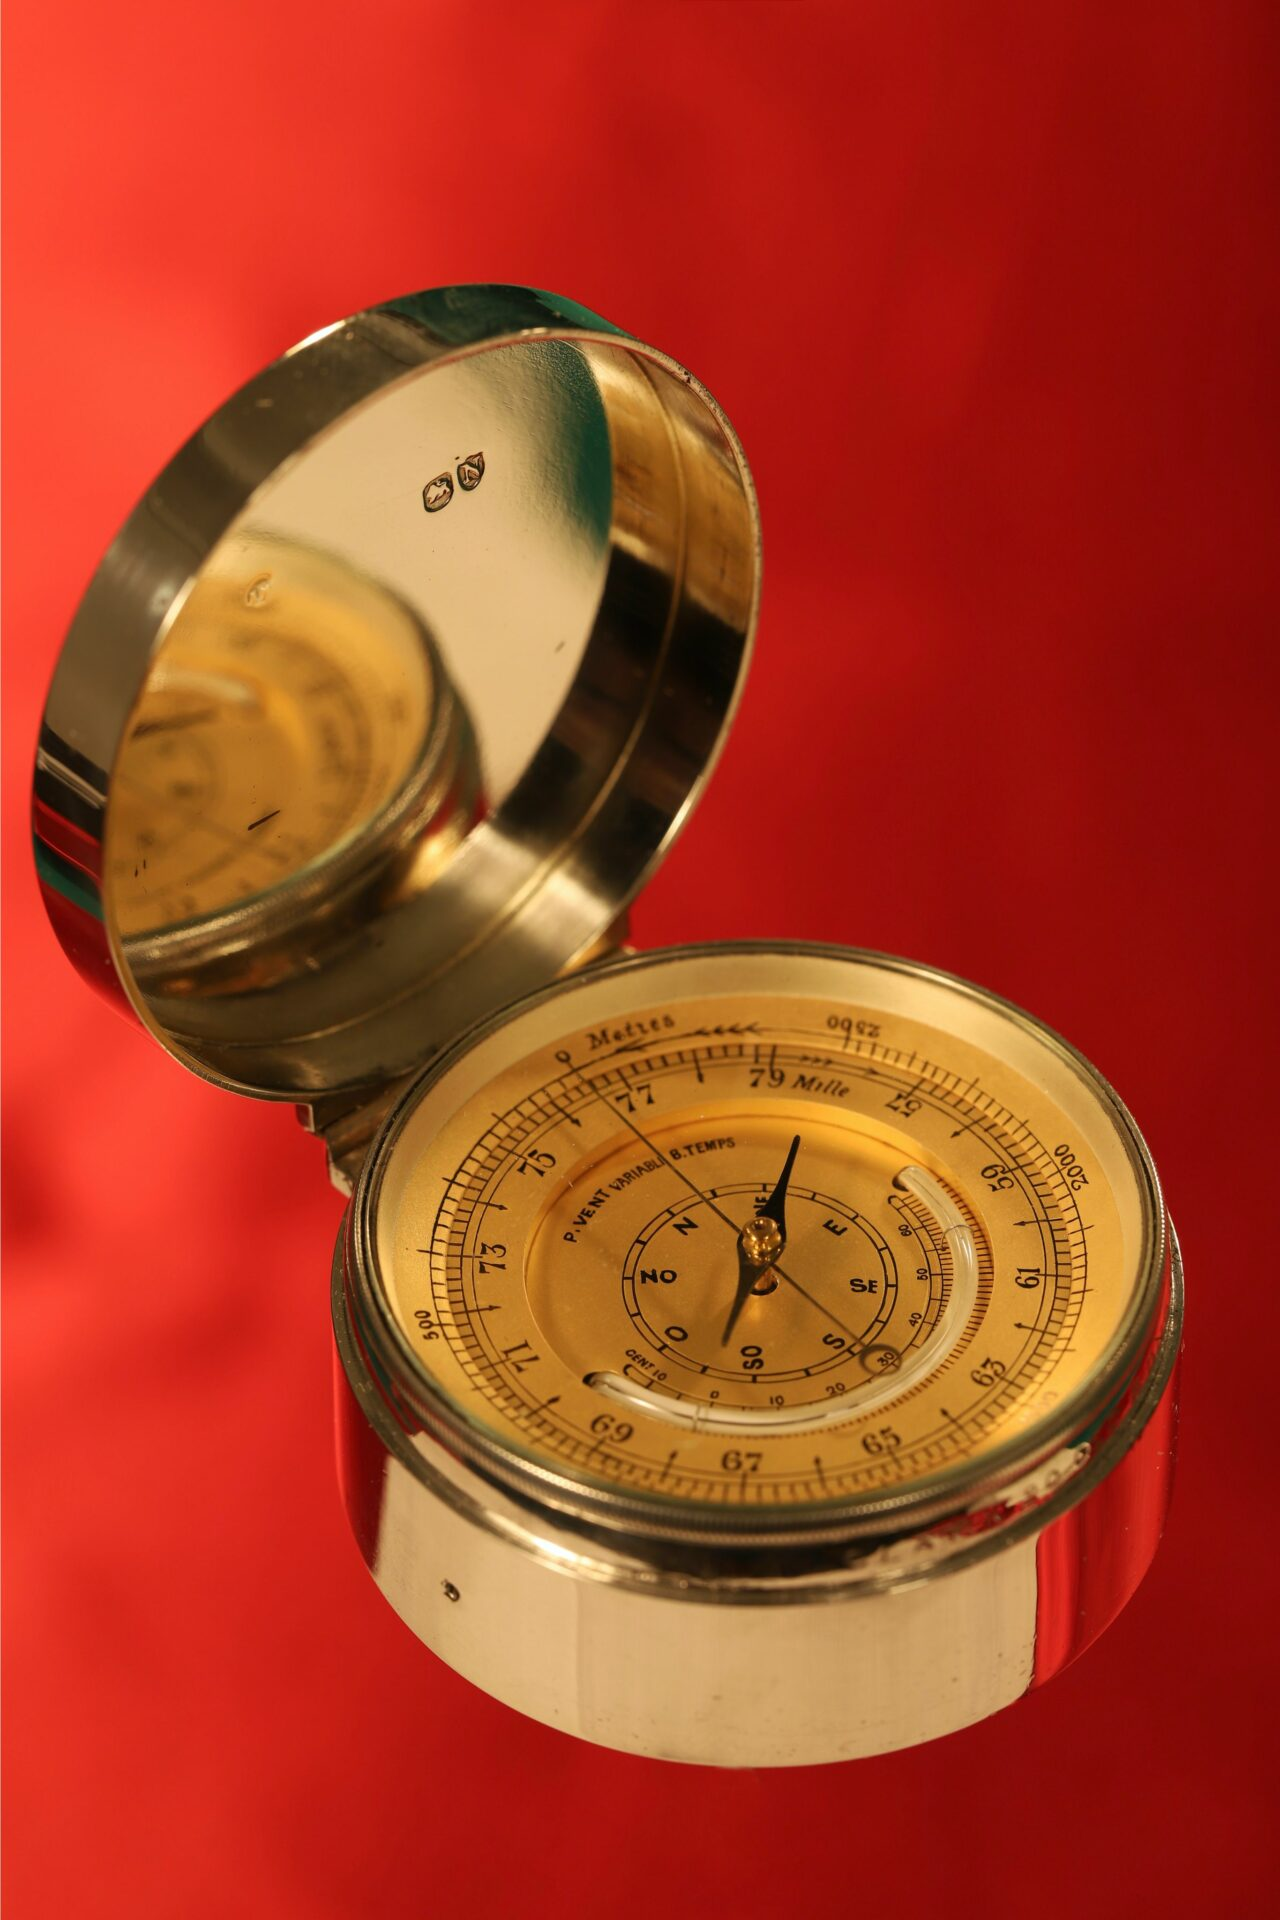 Image of dial of Clark Silver Pocket Barometer Thermometer Compass Compendium c1888 showing hallmarks